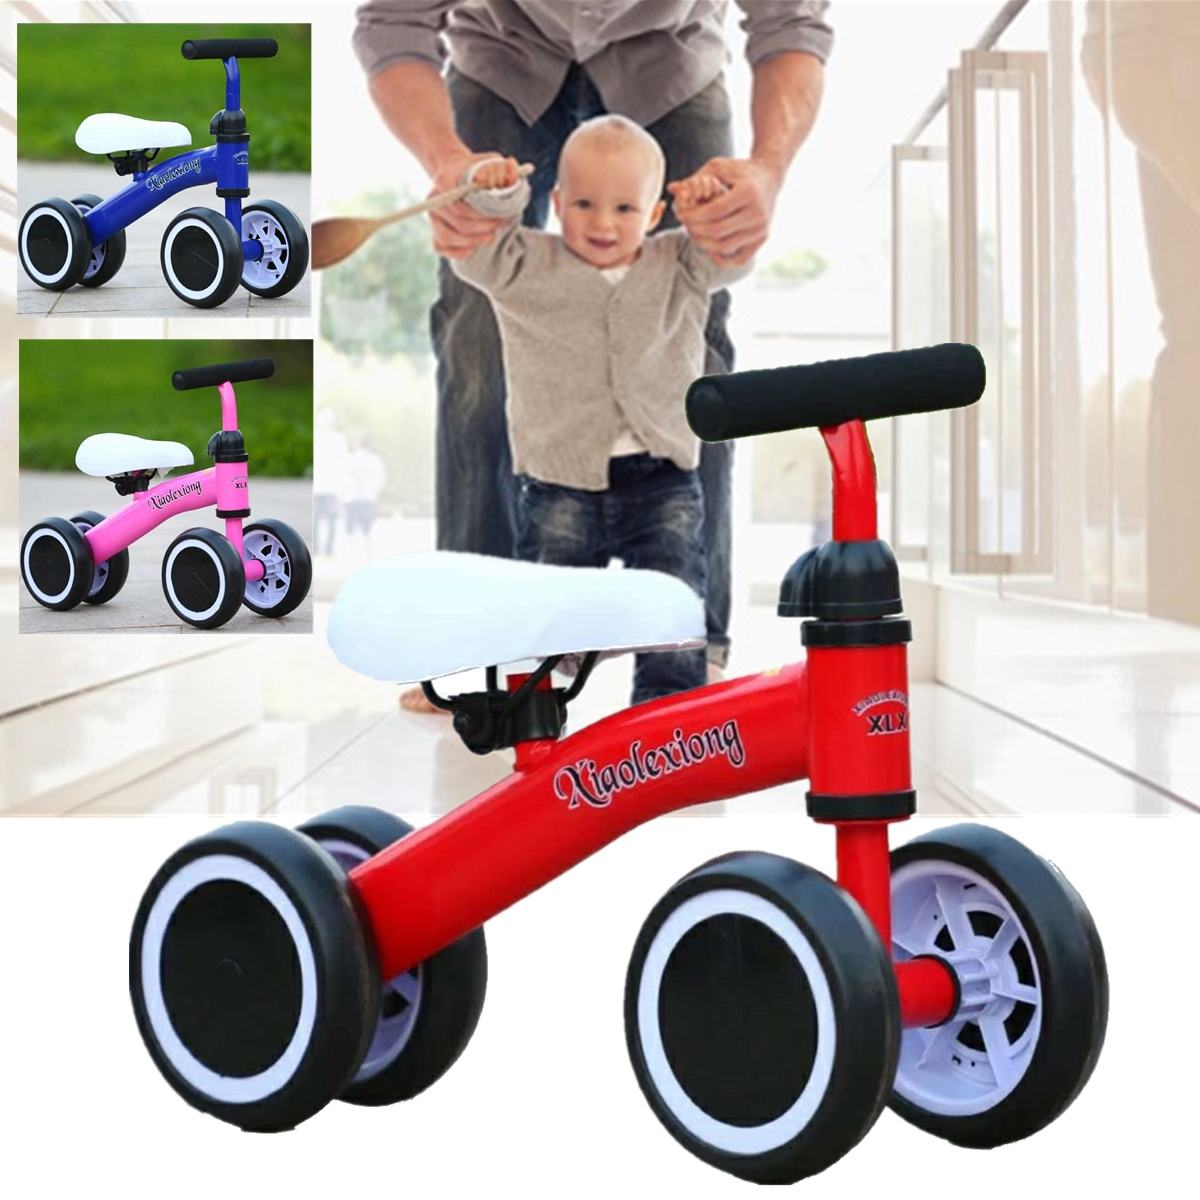 Baby Balance Bike Learn To Walk Get Balance Sense No Foot Pedal Riding Toys for Kids Baby Toddler 1-3 years Child Tricycle BikeBaby Balance Bike Learn To Walk Get Balance Sense No Foot Pedal Riding Toys for Kids Baby Toddler 1-3 years Child Tricycle Bike